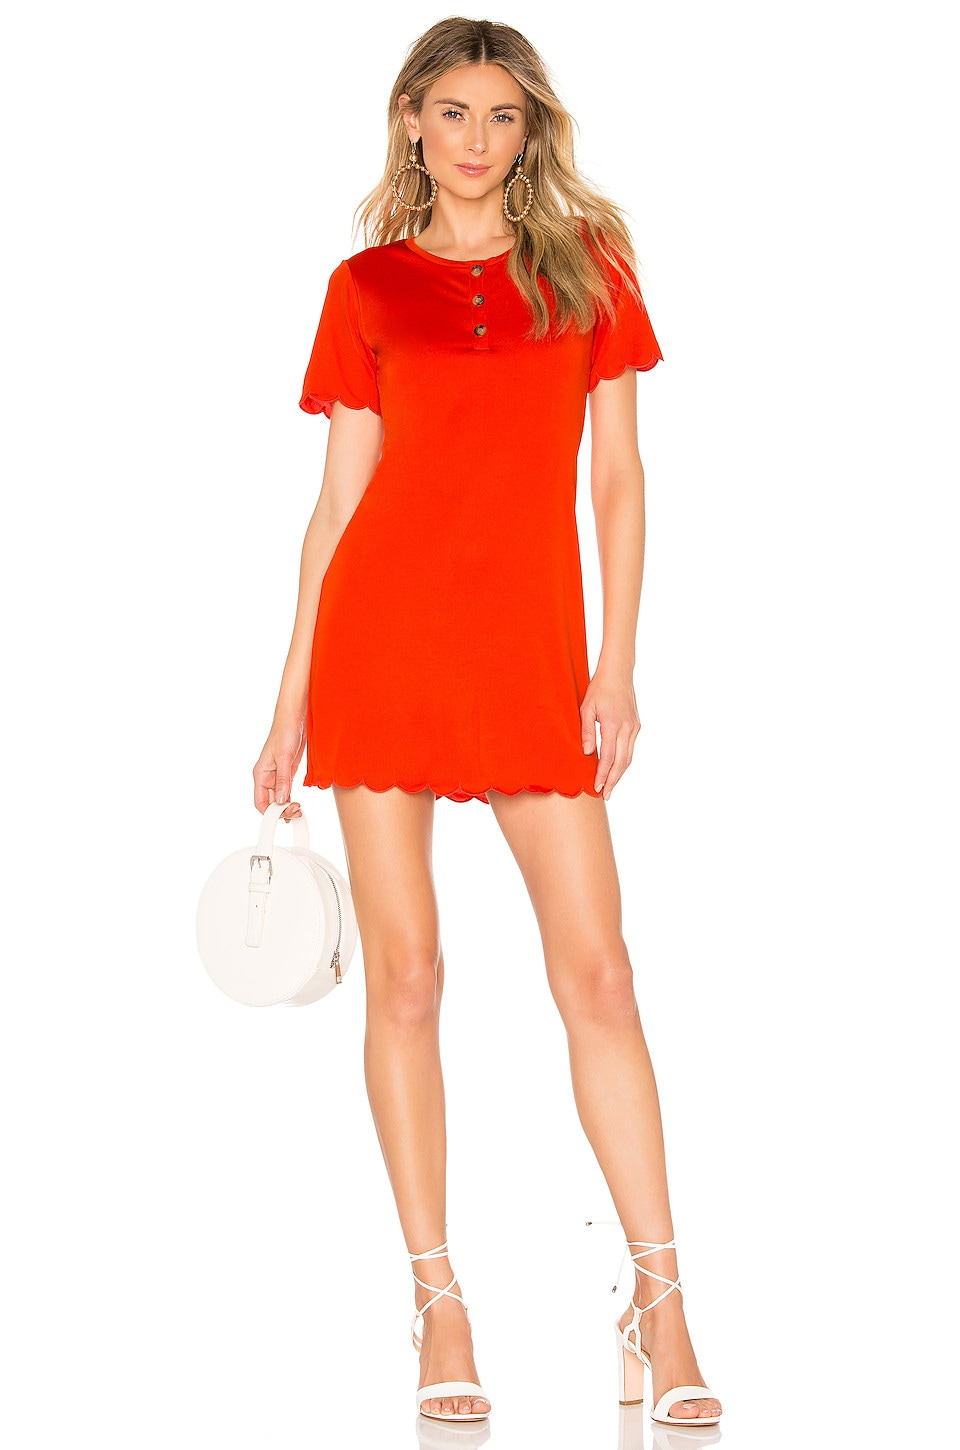 House of Harlow 1960 x REVOLVE Delphine Henley Dress in Red